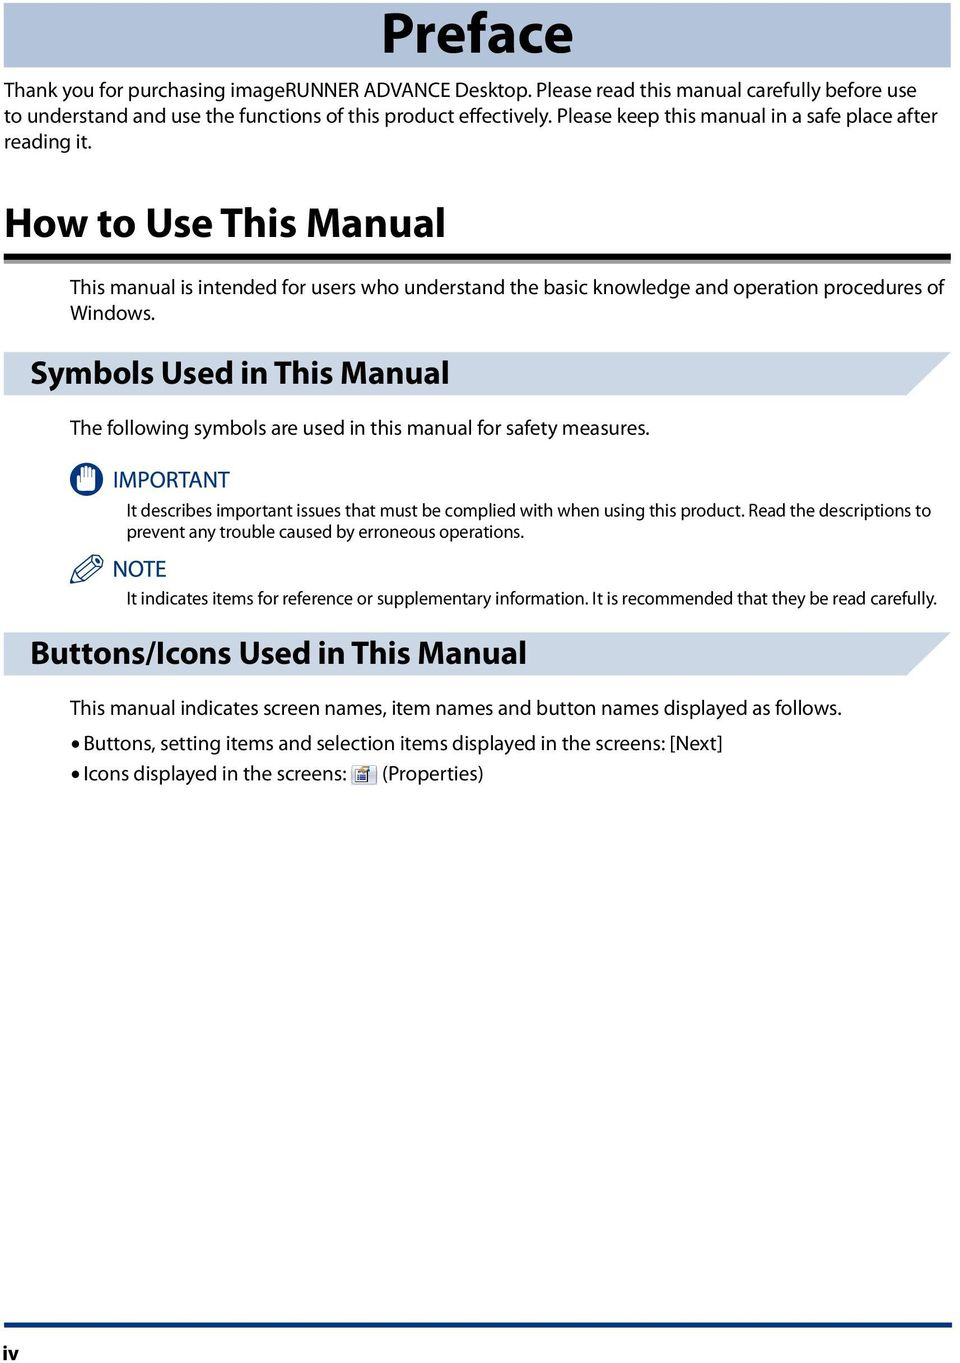 Symbols Used in This Manual The following symbols are used in this manual for safety measures. It describes important issues that must be complied with when using this product.